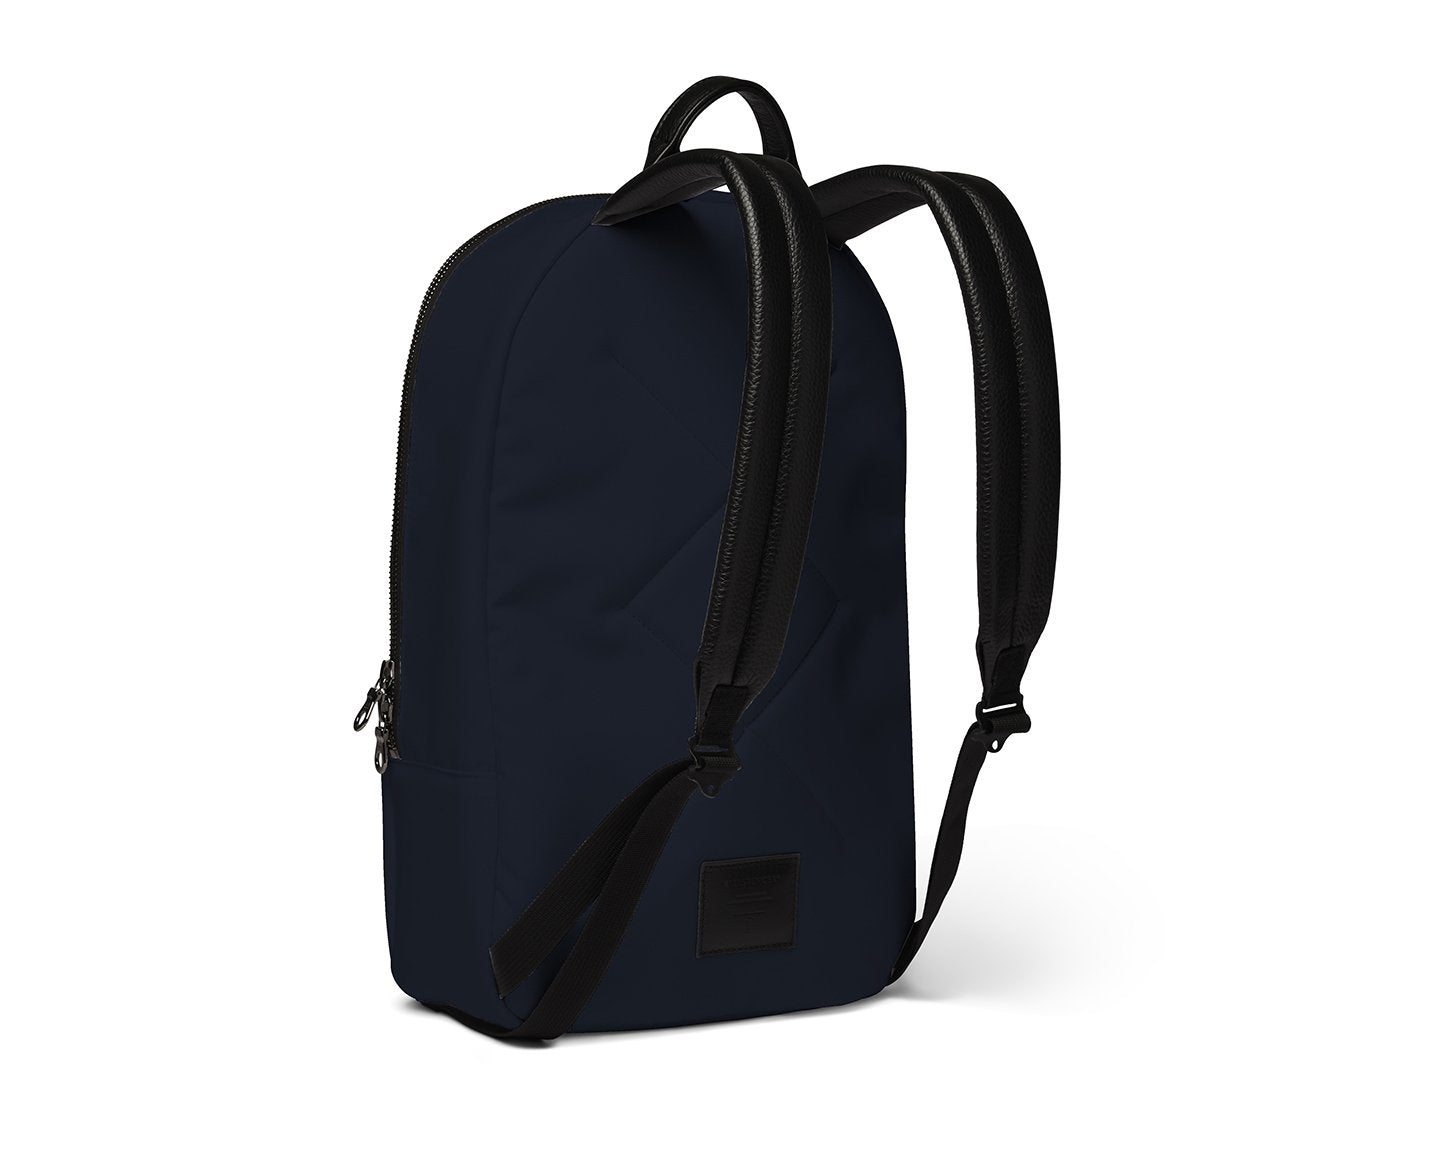 SPECIAL OPS BACKPACK 3.0 | KILLSPENCER® - Navy Nylon